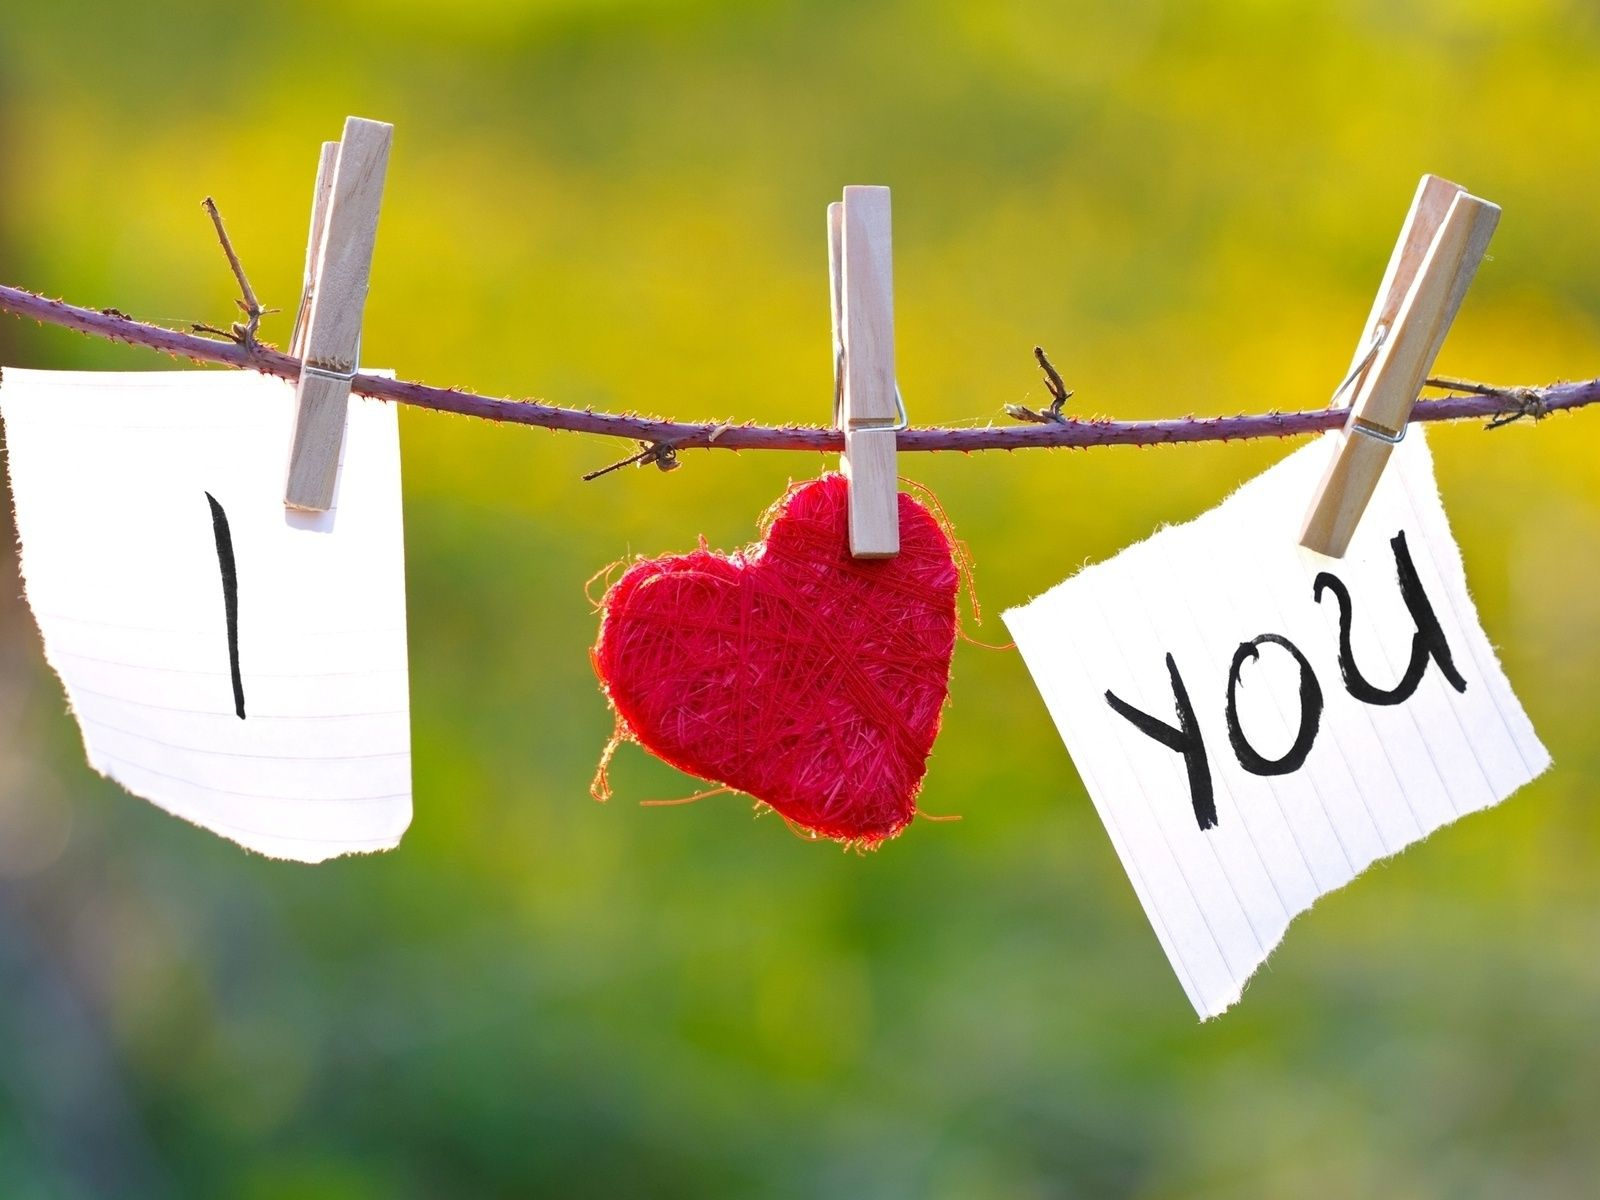 Free I Love You Quotes Inspiration I Love You Pictures Cute  Love You Quotes Hd Wallpaper Of Love